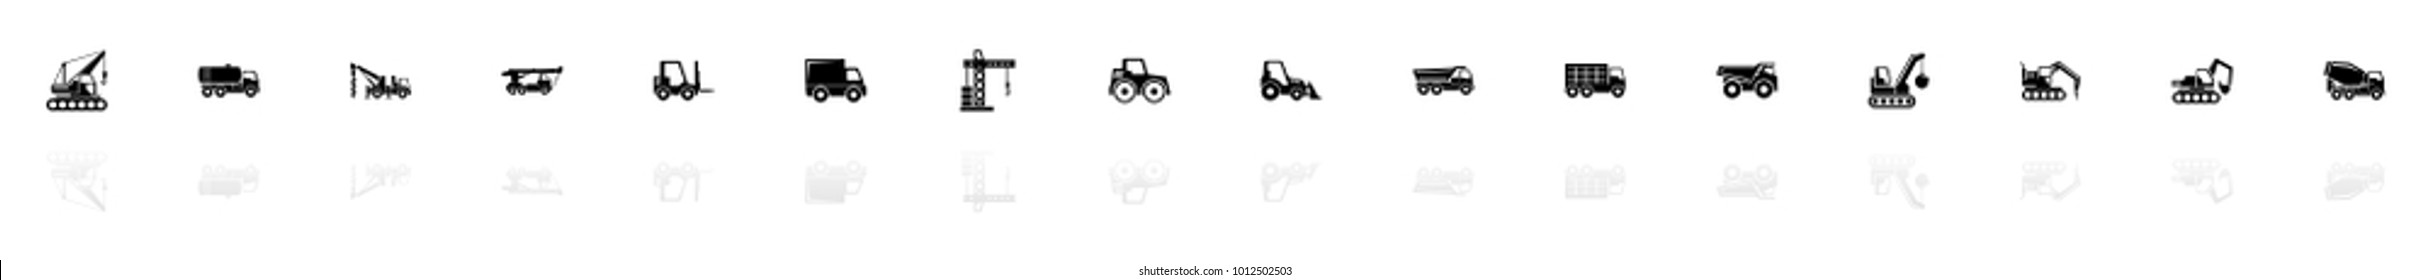 Construction Vehicles icons - Black horizontal Illustration symbol on White Background with a mirror Shadow reflection. Flat Vector Icon.